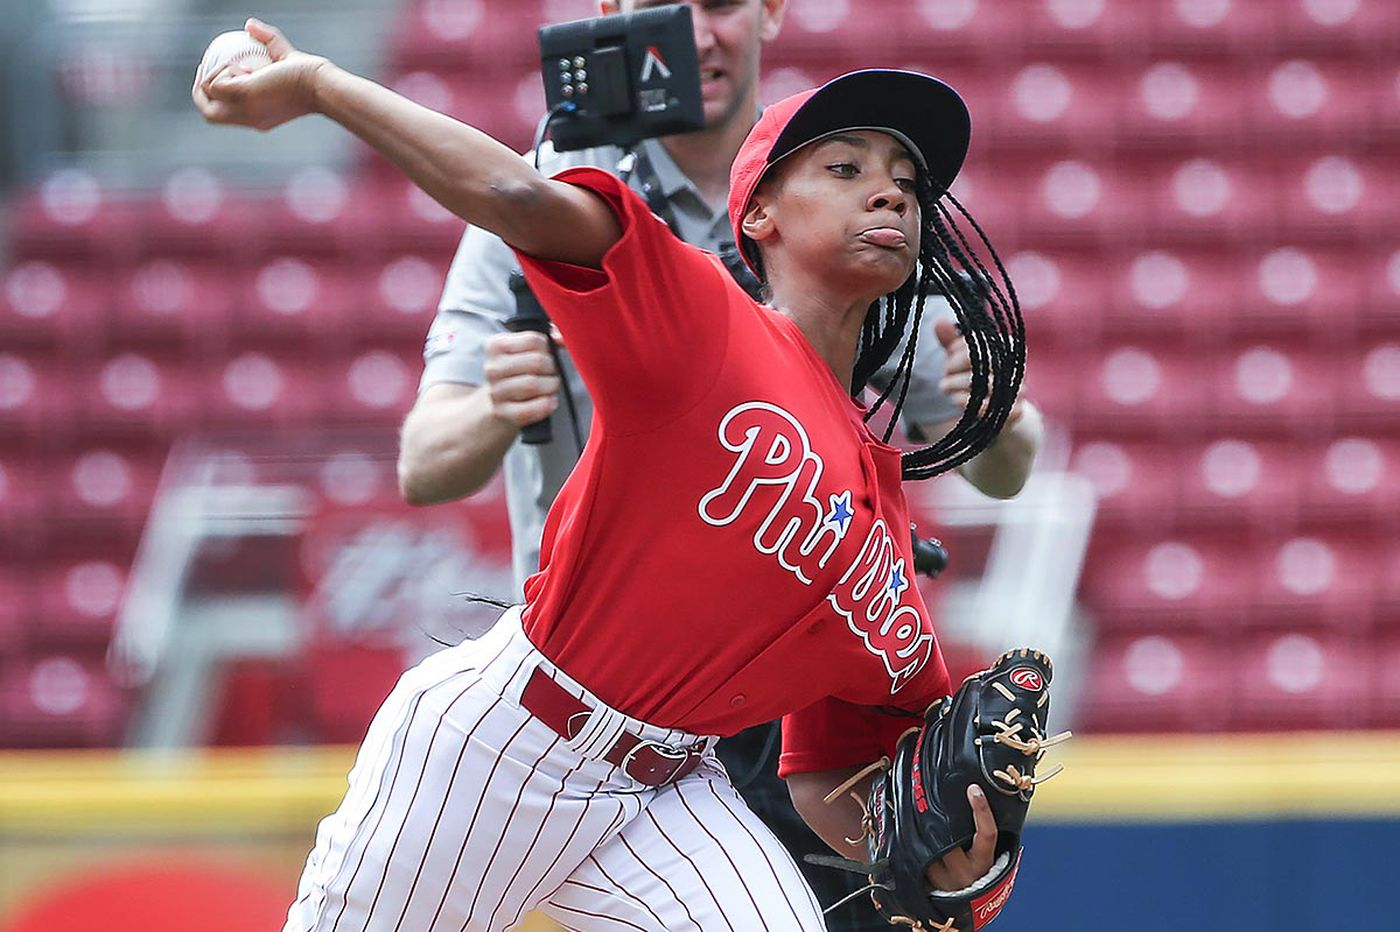 The defiant girls who refuse to play softball instead of baseball, and why they rock